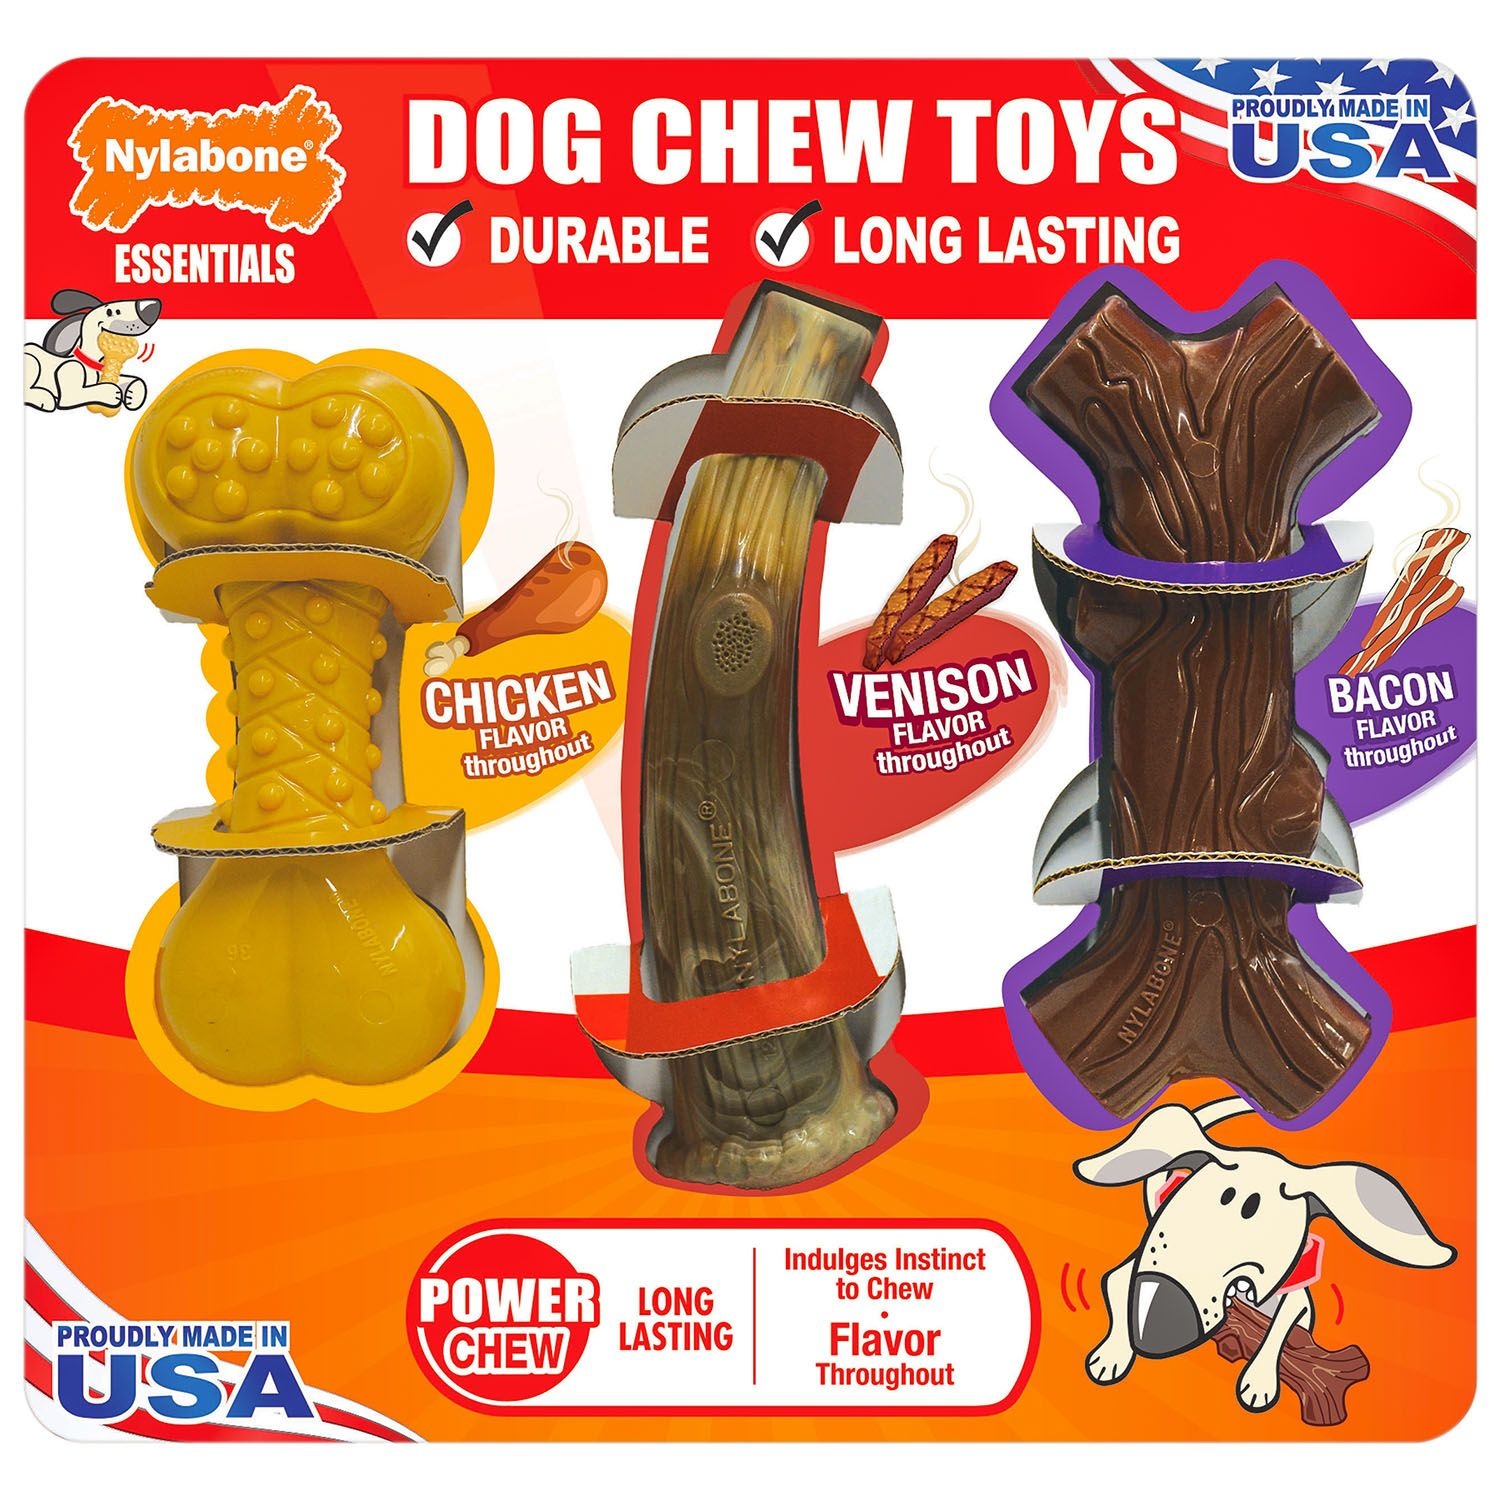 Nylabone Essentials Dog Chew Toys, 3 pk